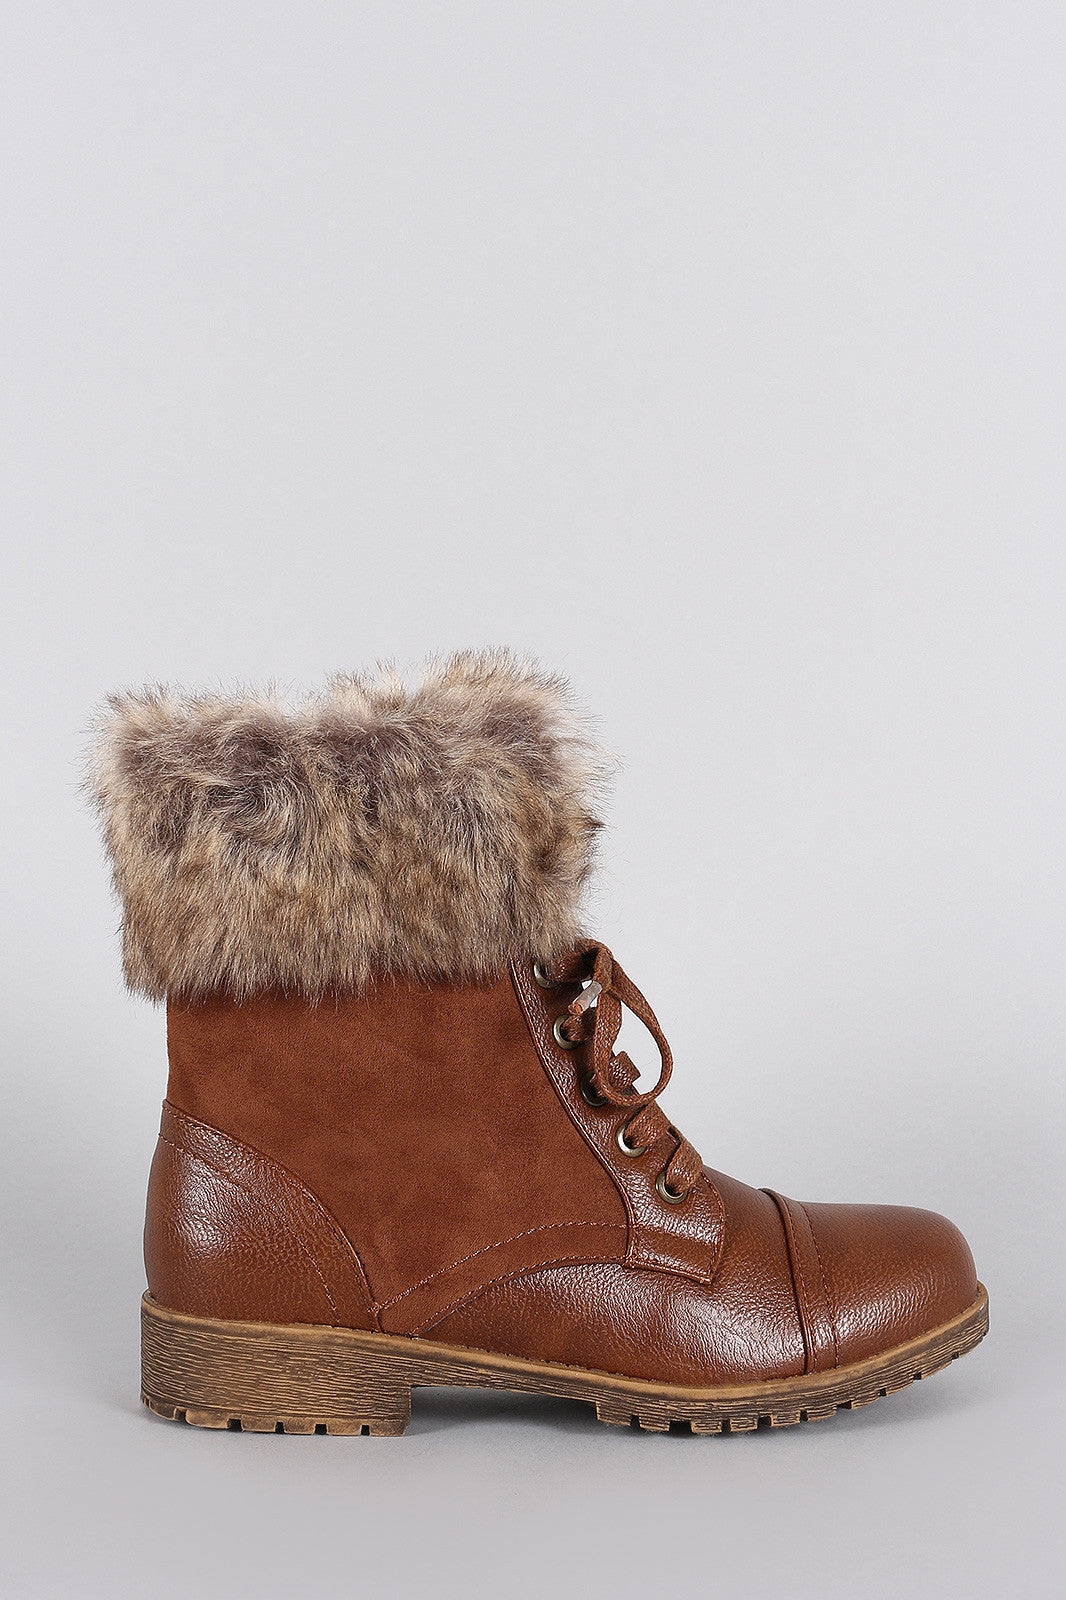 Bamboo Combat Faux Fur Ankle Cuff Lug Sole Booties - Thick 'N' Curvy Shop - 1